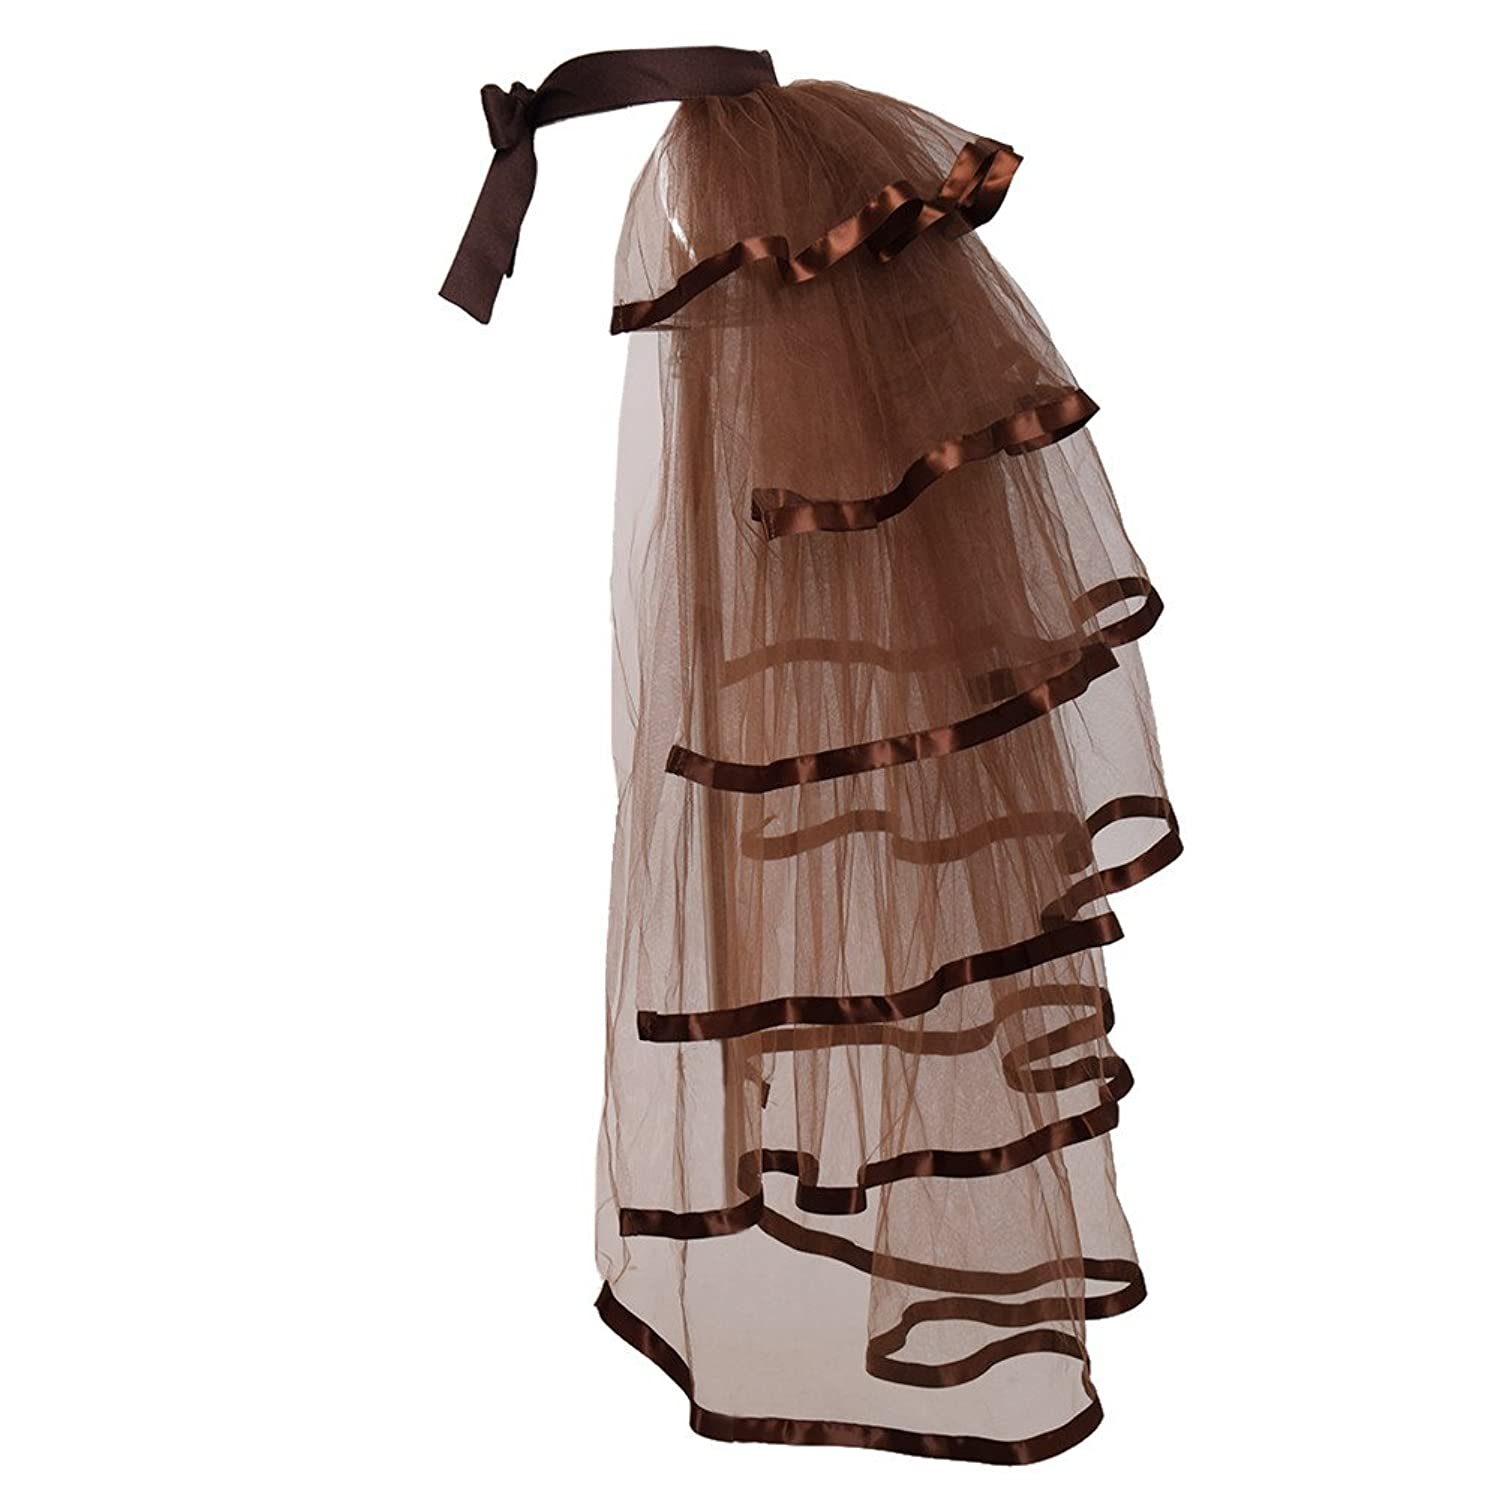 5358272e7 Top3: GRACEART Victorian Steampunk Tie-on Bustle Costume Tutu Belt Lace  Underskirt